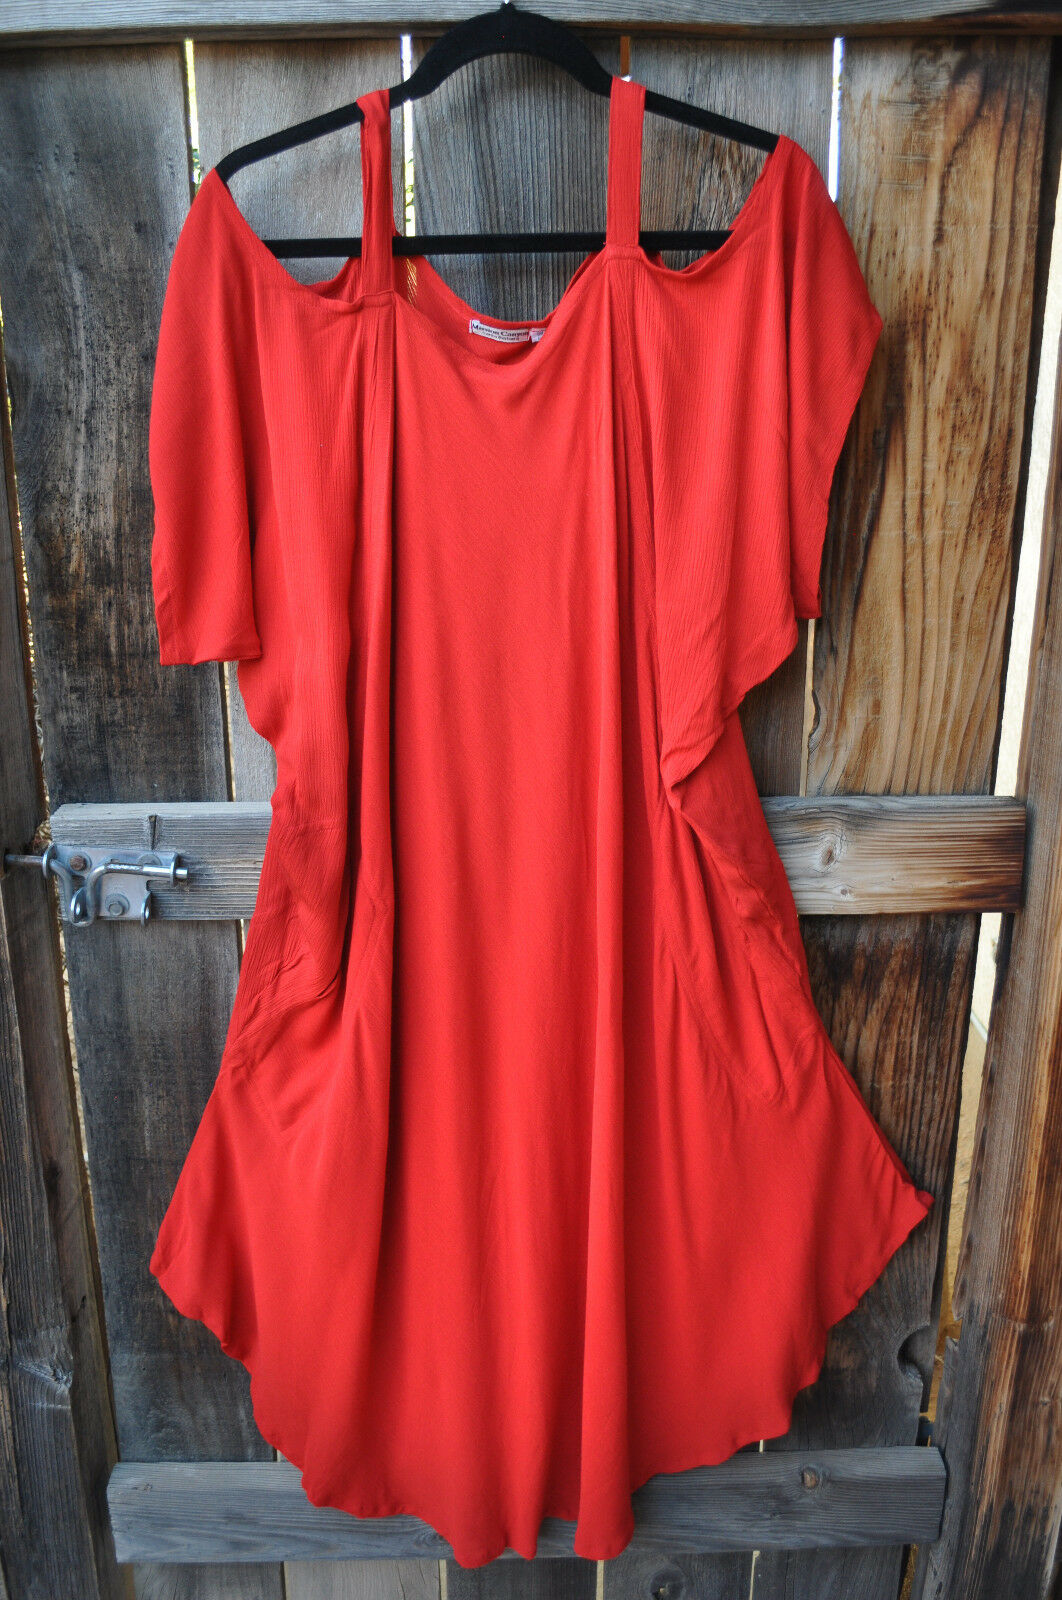 ART TO WEAR SAHARA 'COLD SHOULDER' TOP IN SOLID SCARLET rot BY MISSION CANYON,OS